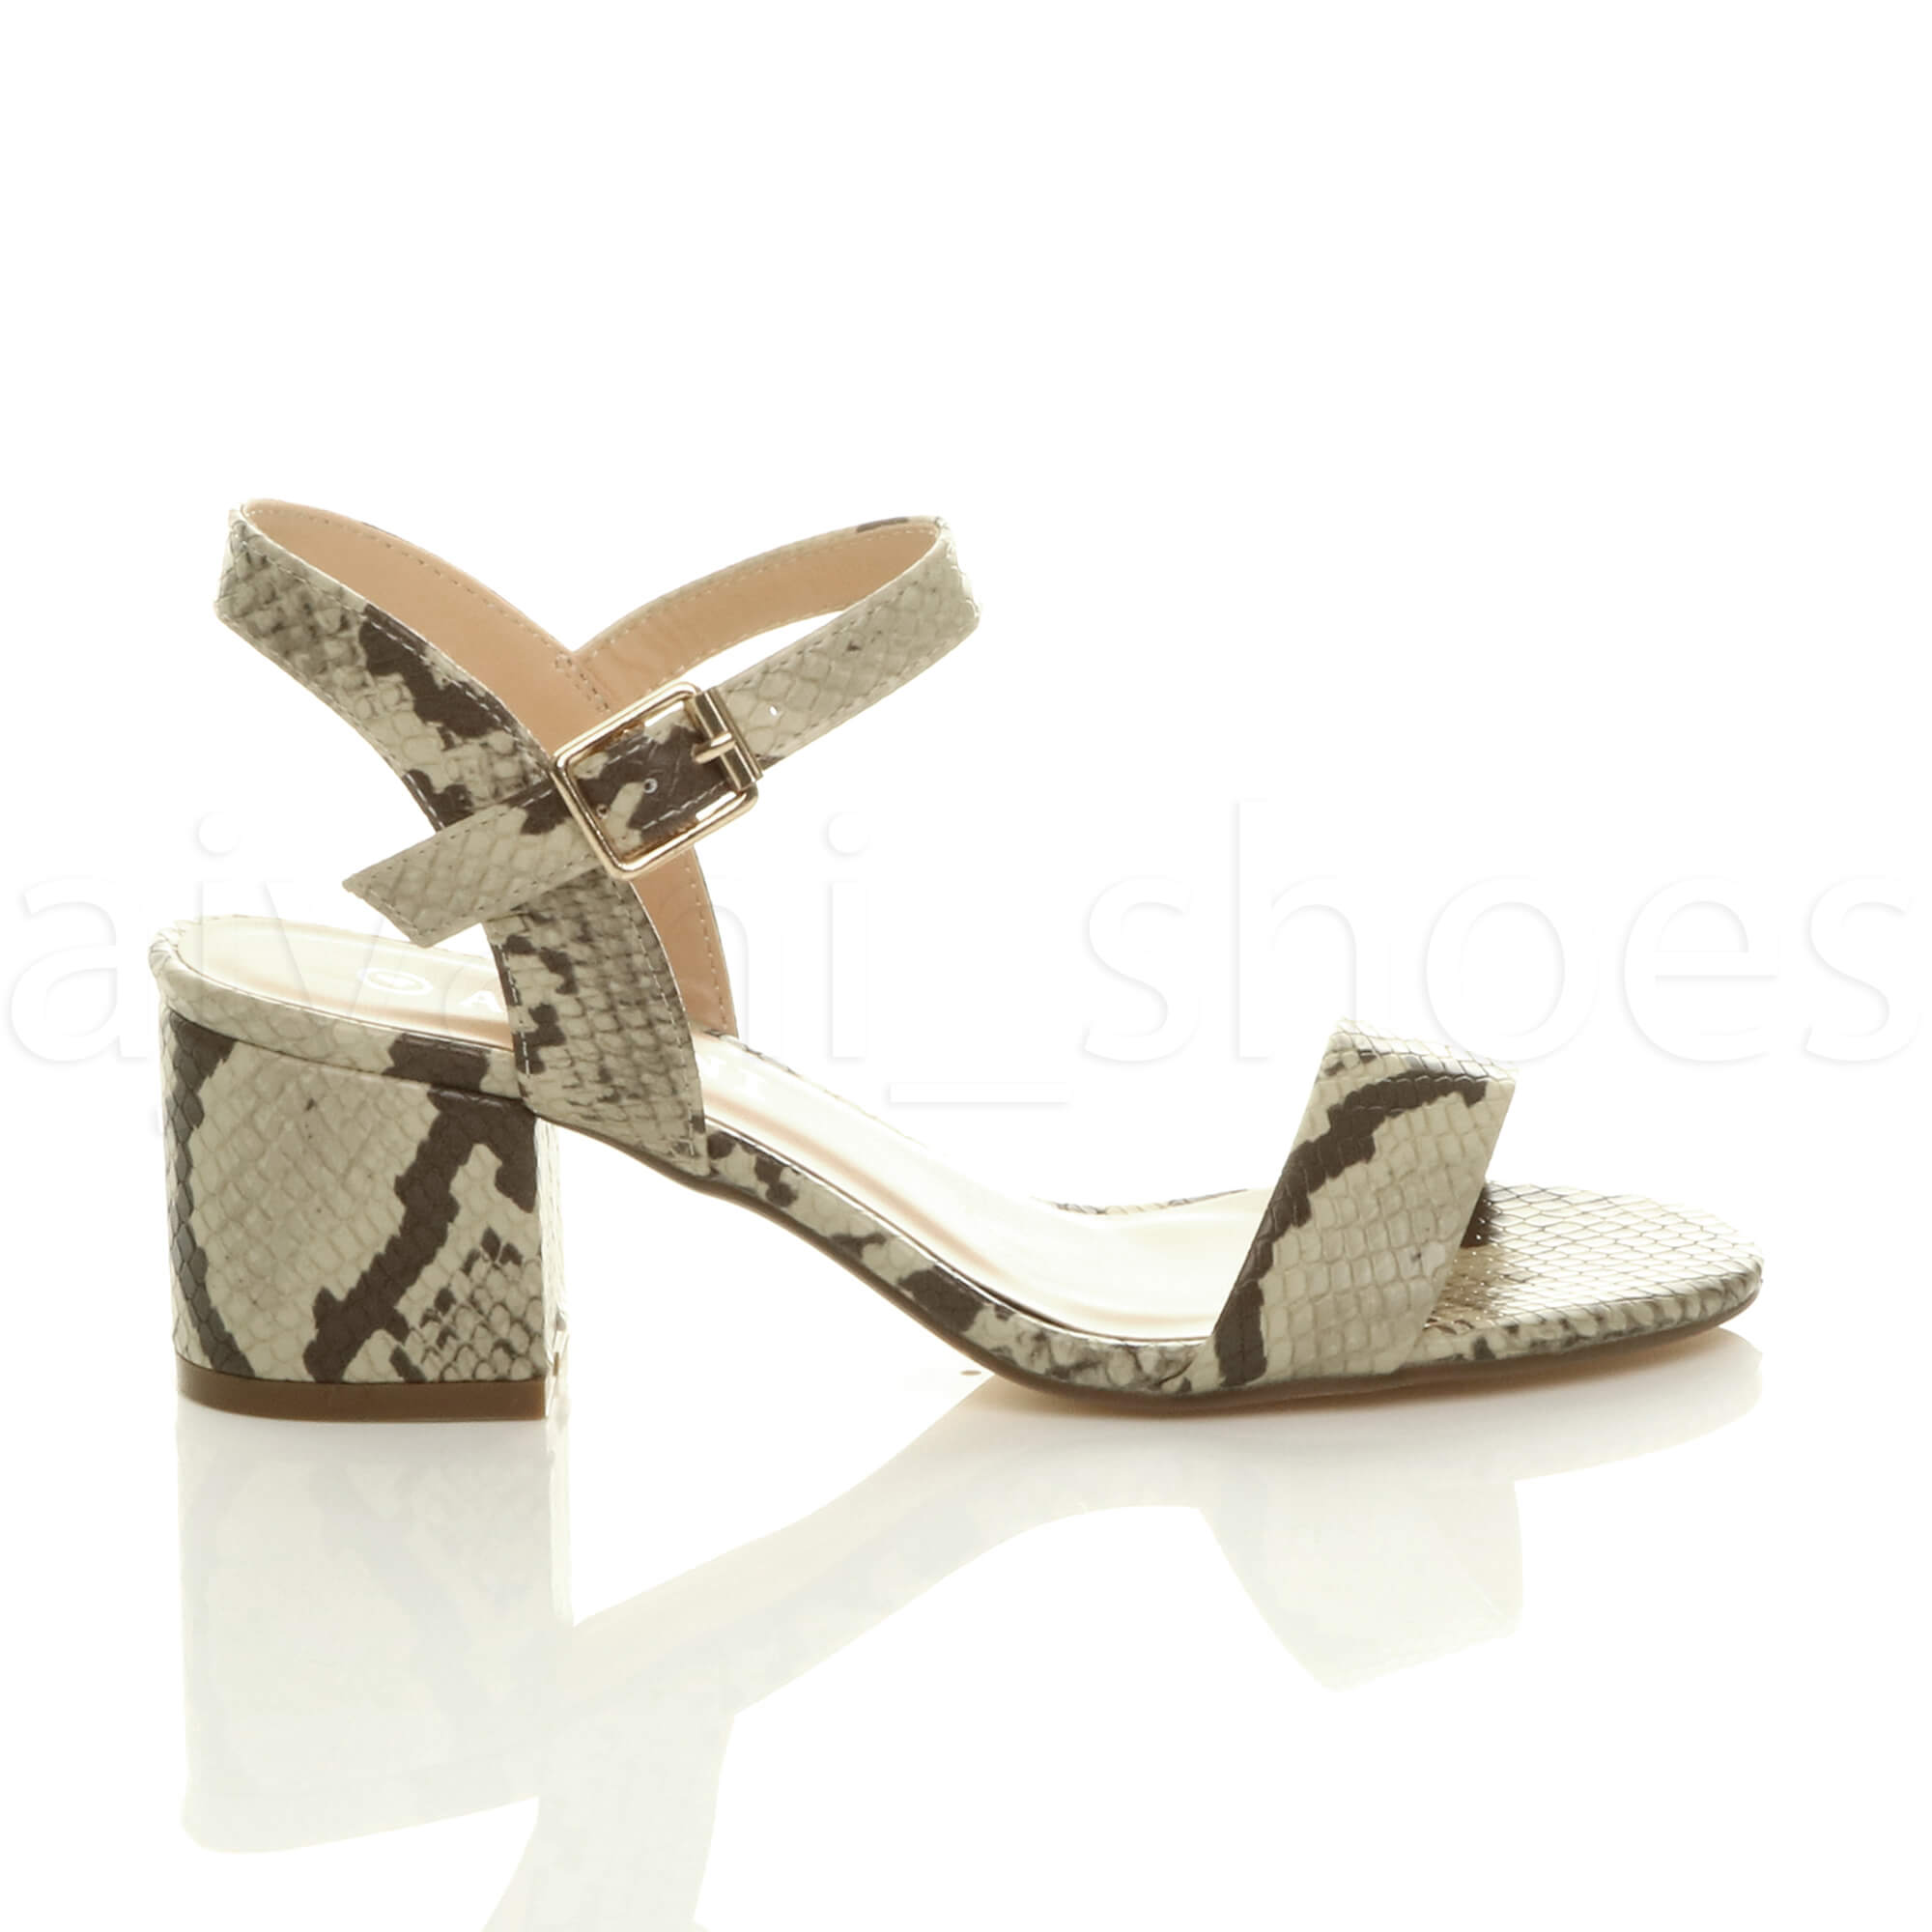 WOMENS-LADIES-MID-LOW-BLOCK-HEEL-PEEP-TOE-ANKLE-STRAP-STRAPPY-PARTY-SANDALS-SIZE thumbnail 3